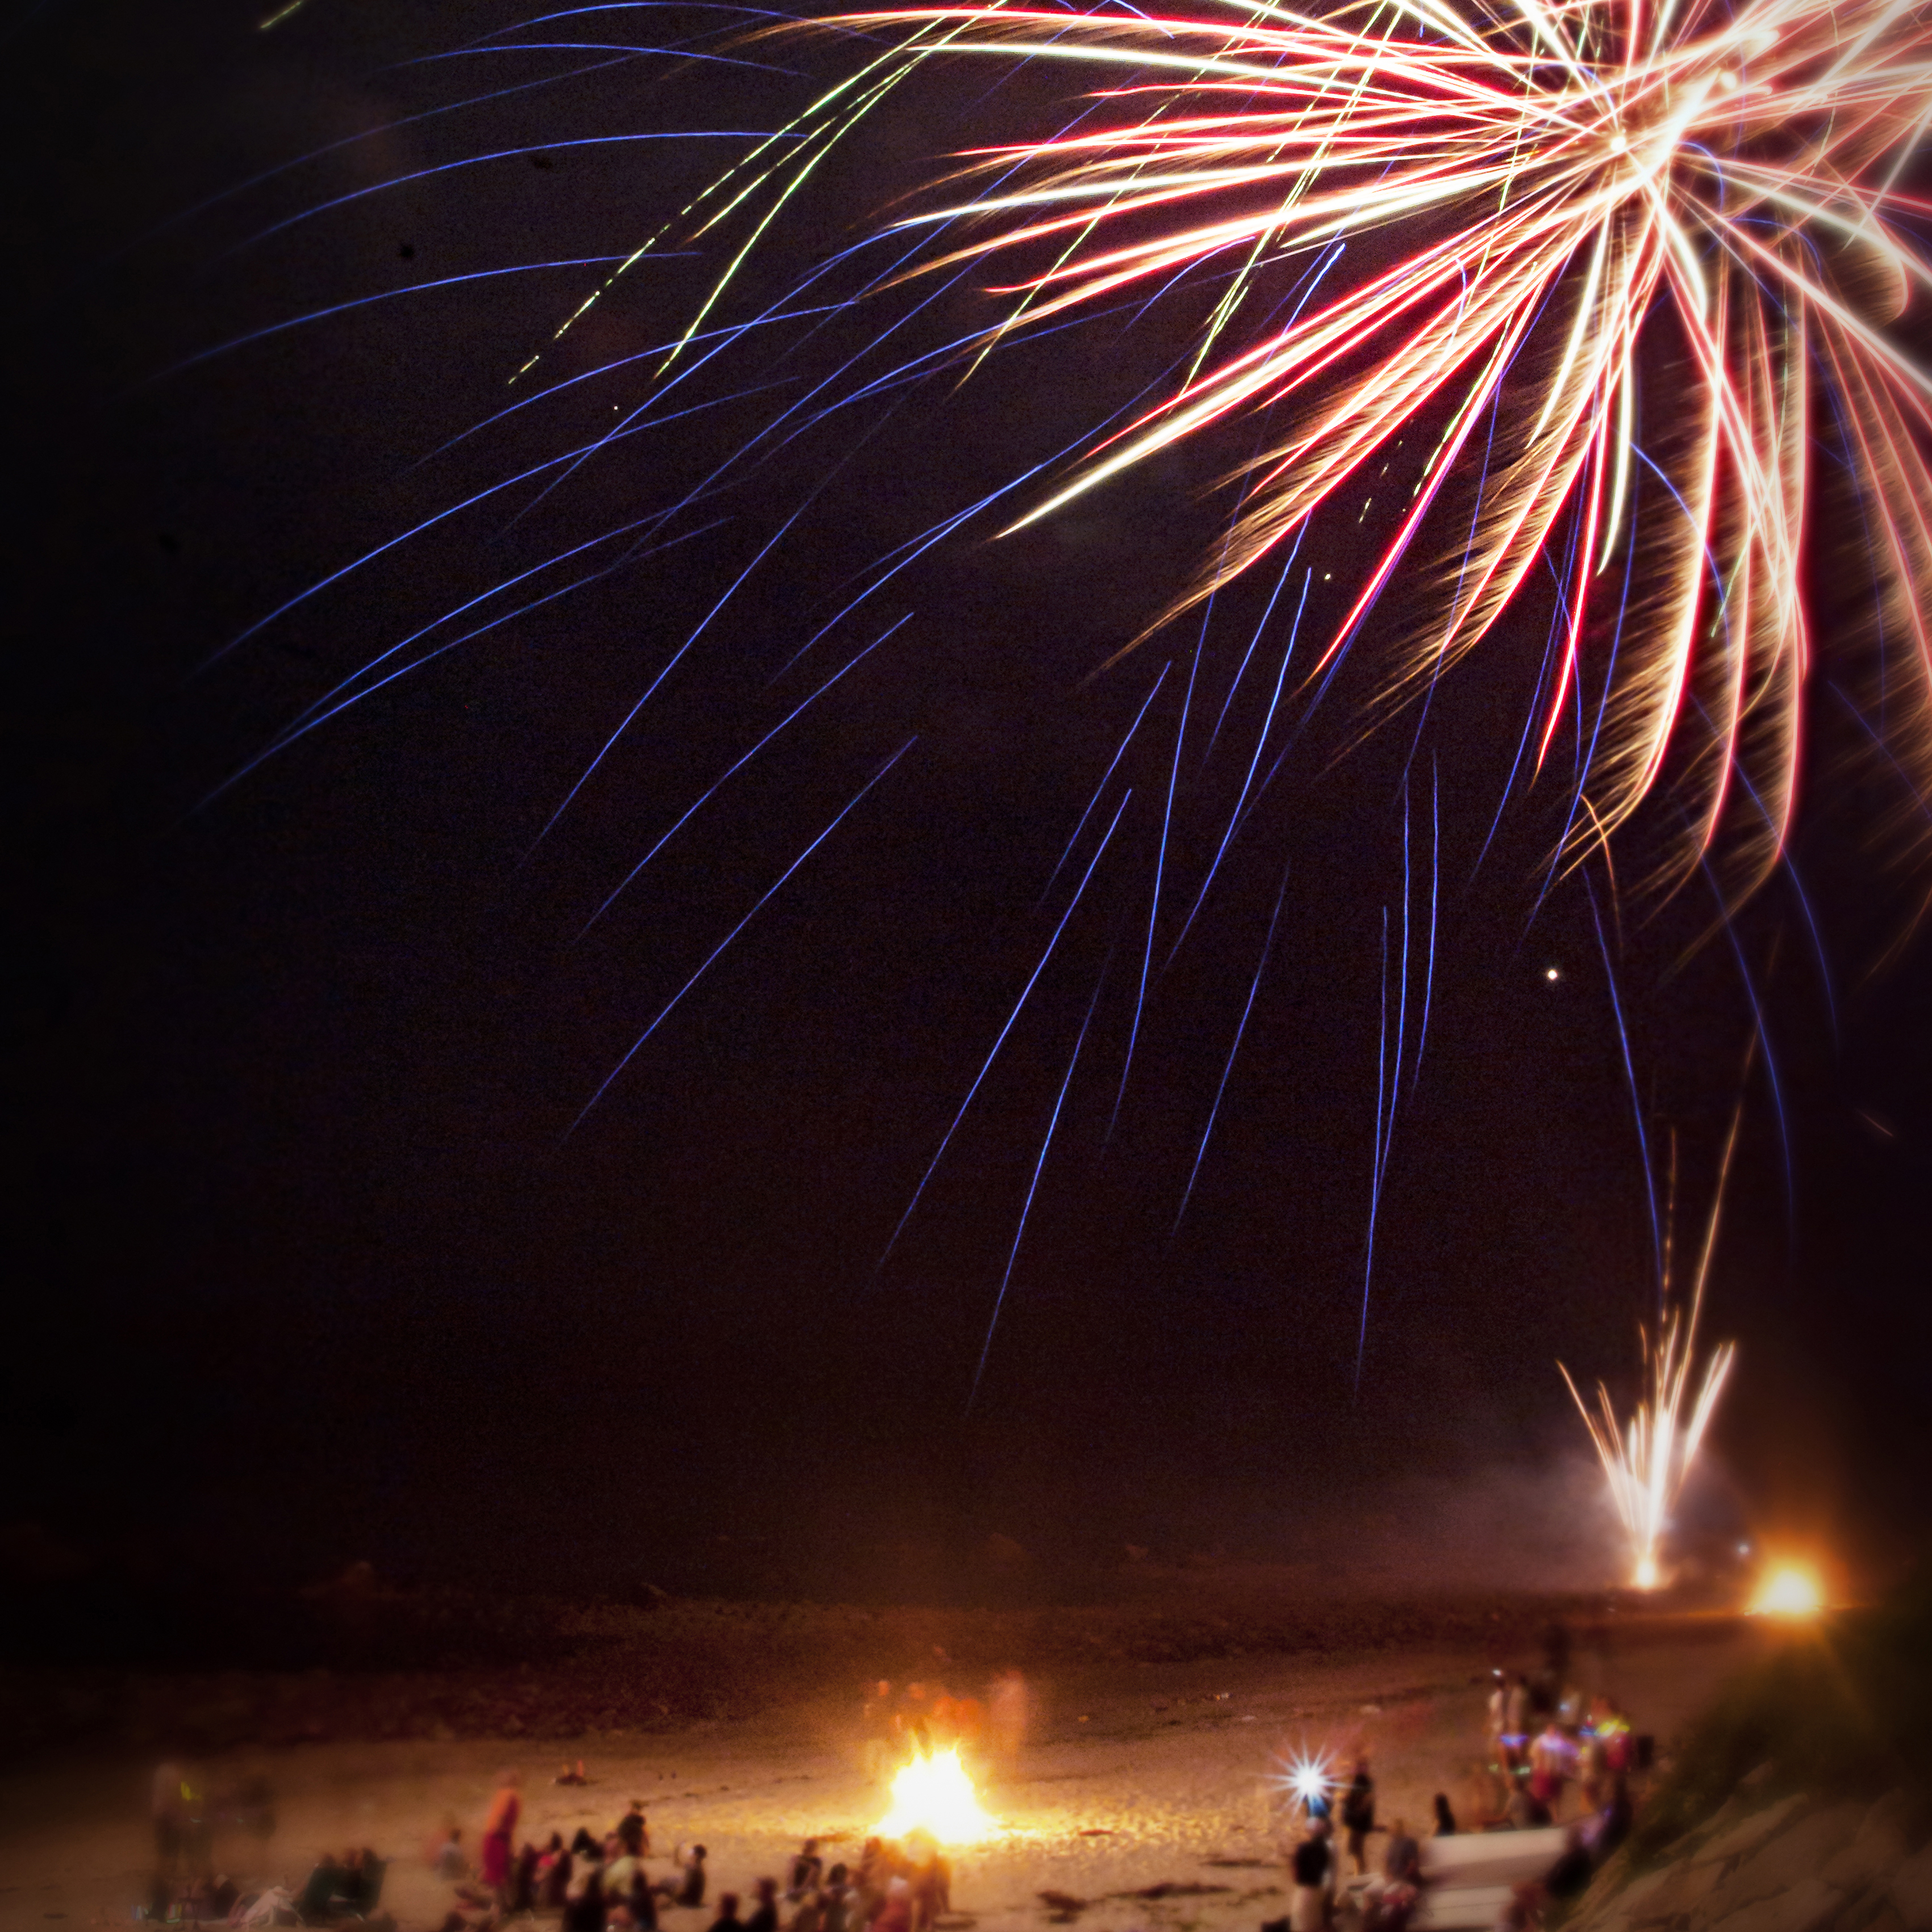 how to shoot fireworks 234x234